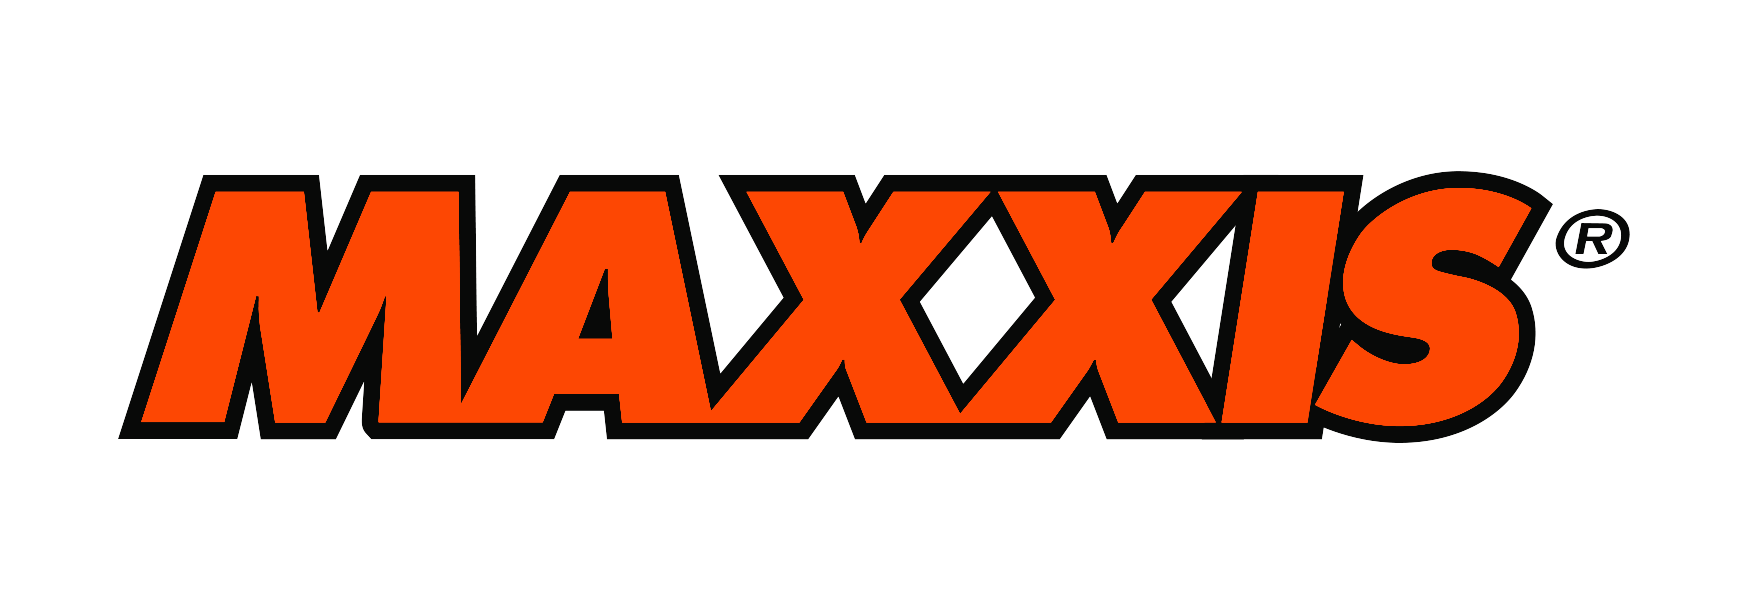 maxxis-word-outlined.png